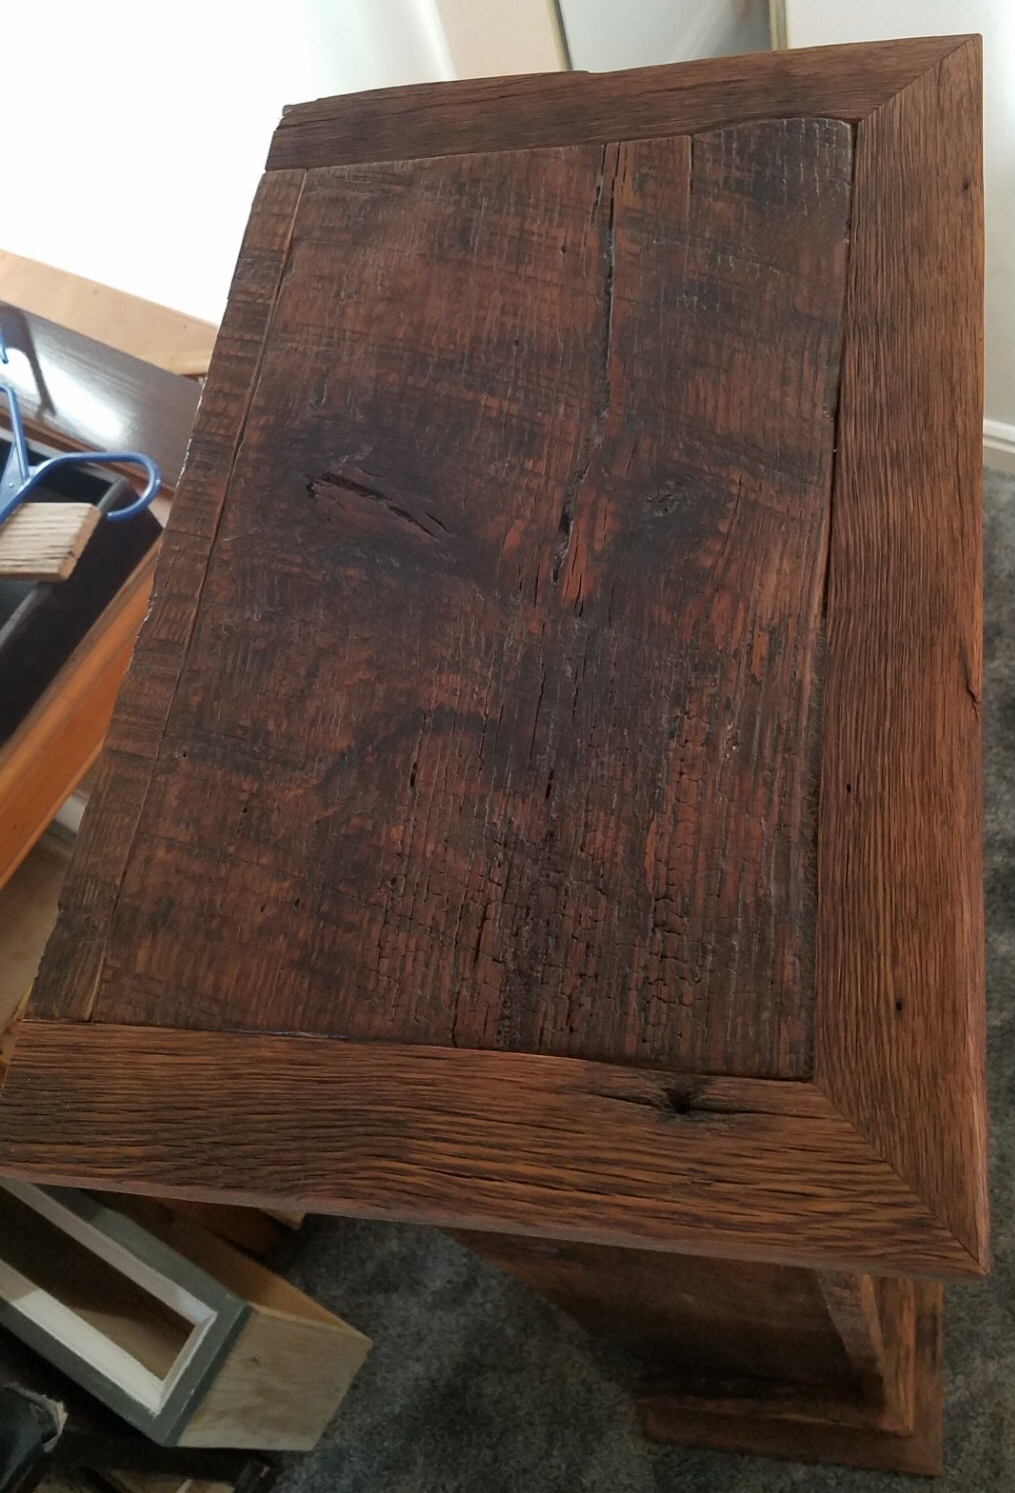 Reclaimed oak apothecary cabinet top with saw tooth marks